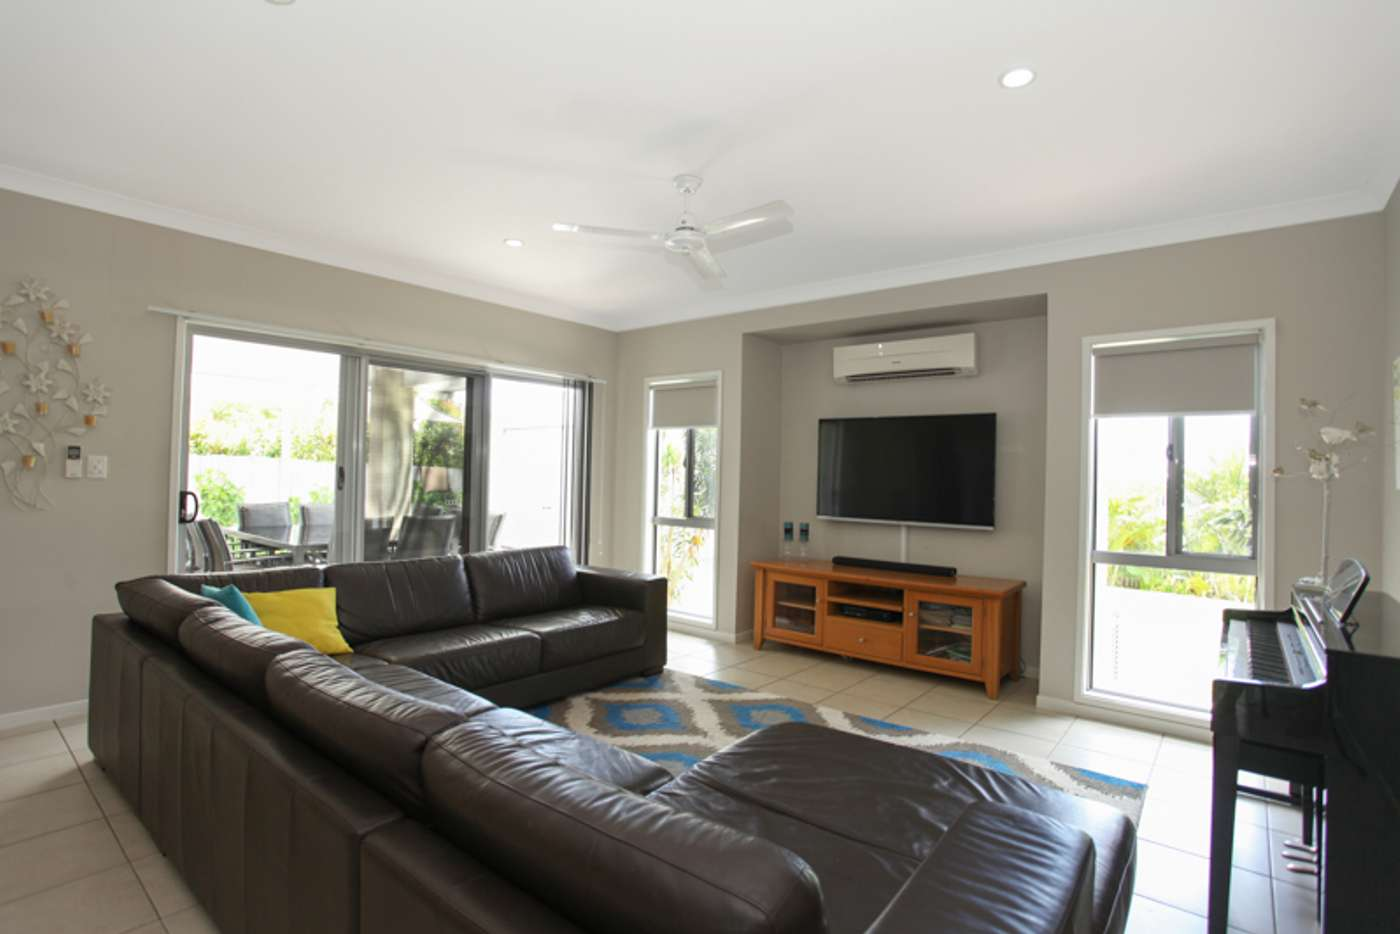 Seventh view of Homely house listing, 10 Bjelke Circuit, Rural View QLD 4740